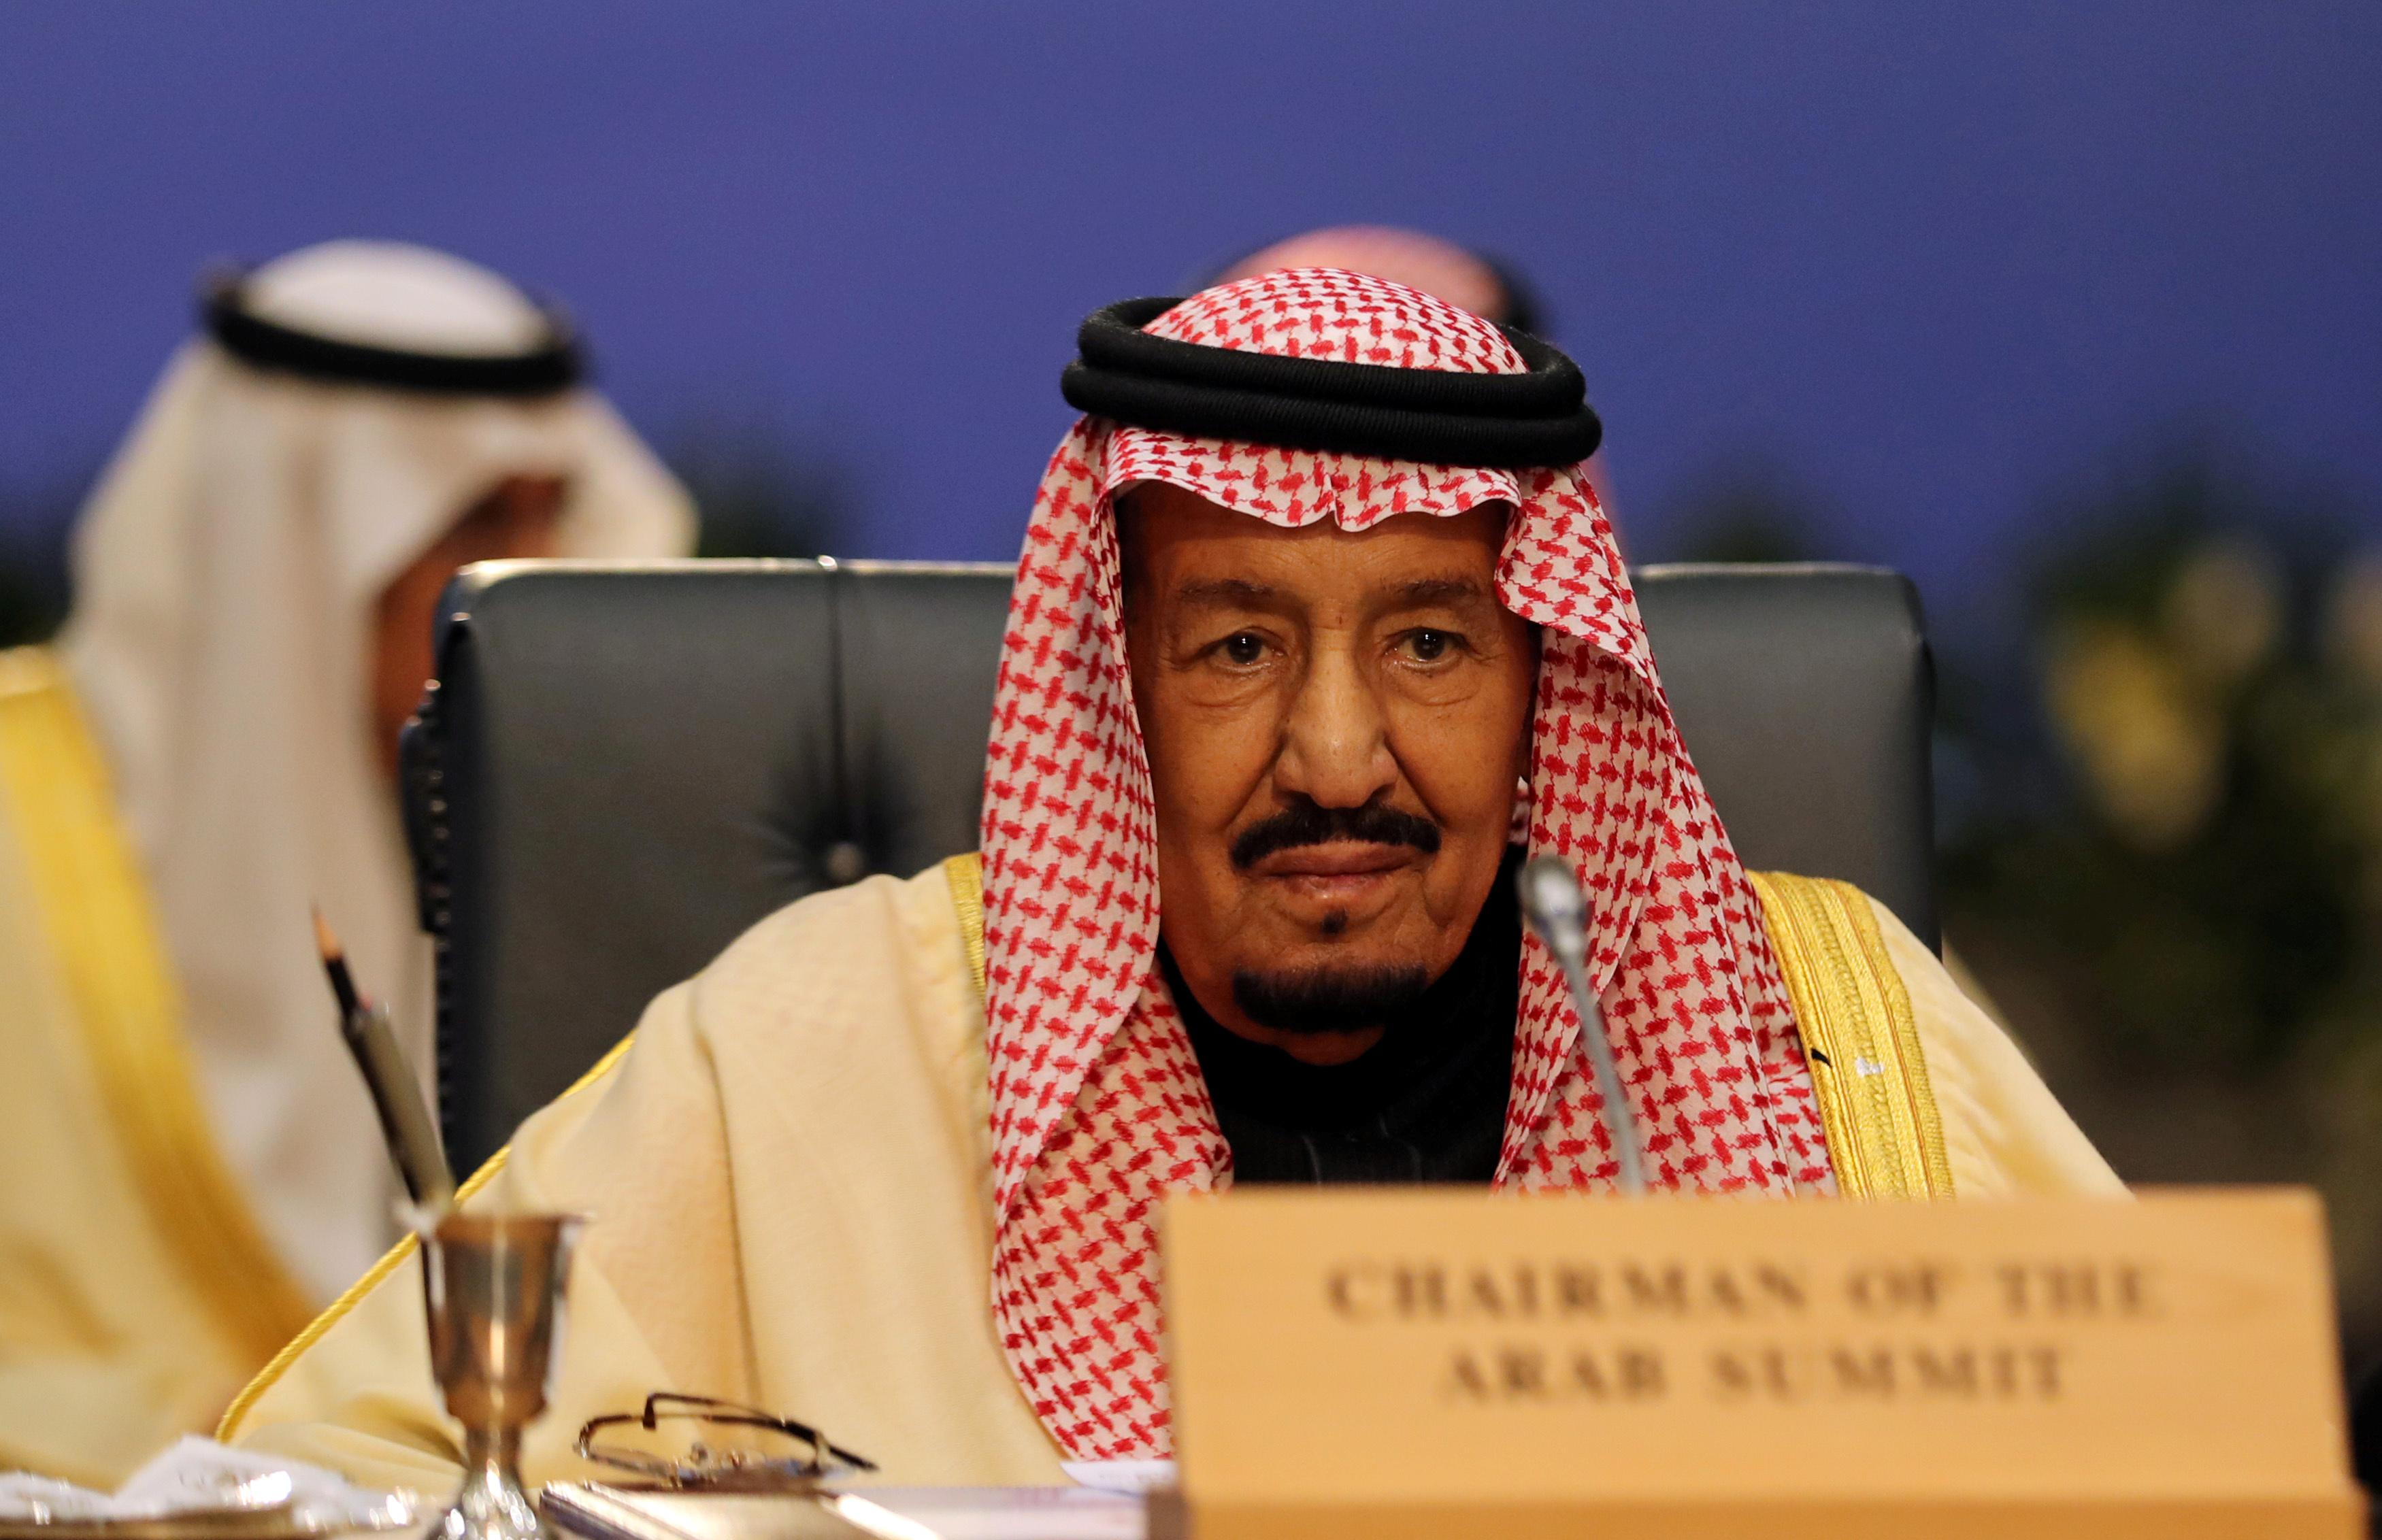 Saudi king approves U.S. military deployment: SPA